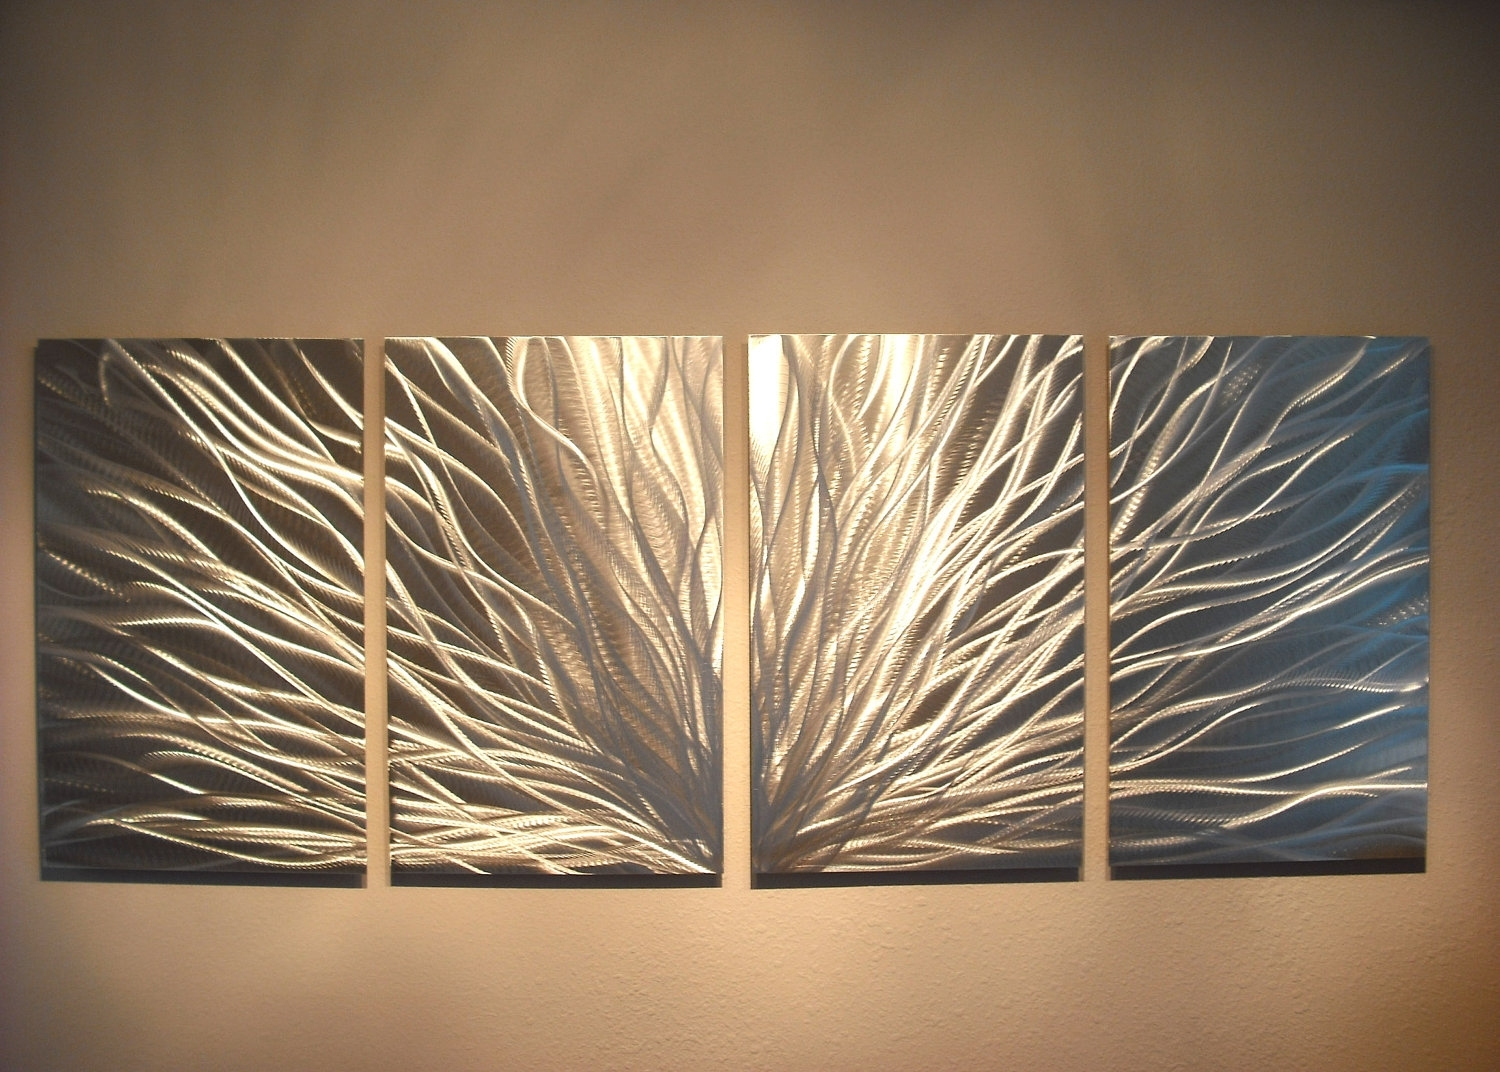 Radiance – Abstract Metal Wall Art Contemporary Modern Decor On Storenvy Pertaining To 2018 Art Wall Decor (Gallery 2 of 20)